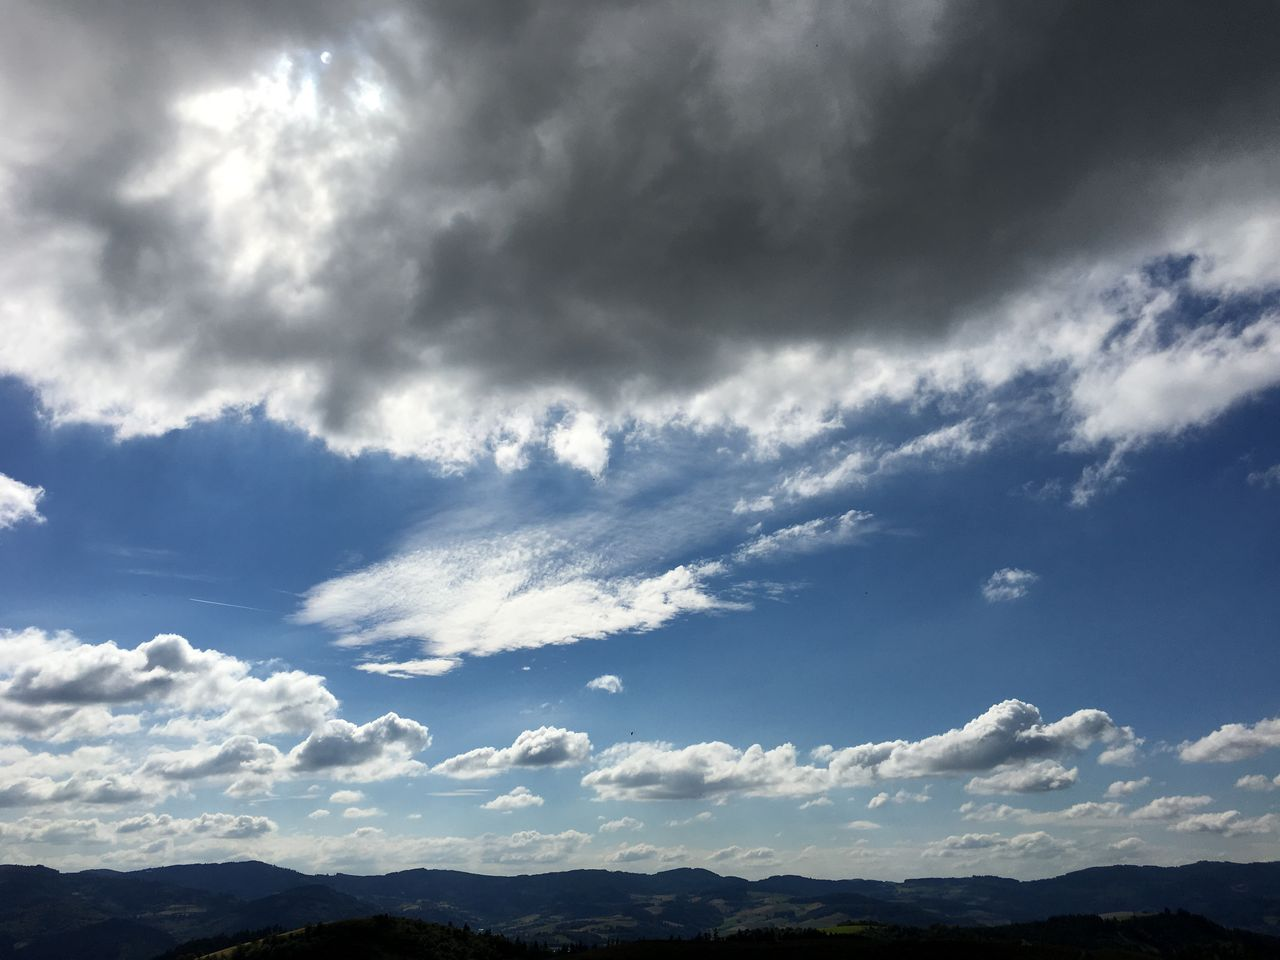 sky, beauty in nature, nature, cloud - sky, scenics, low angle view, day, tranquility, no people, outdoors, tranquil scene